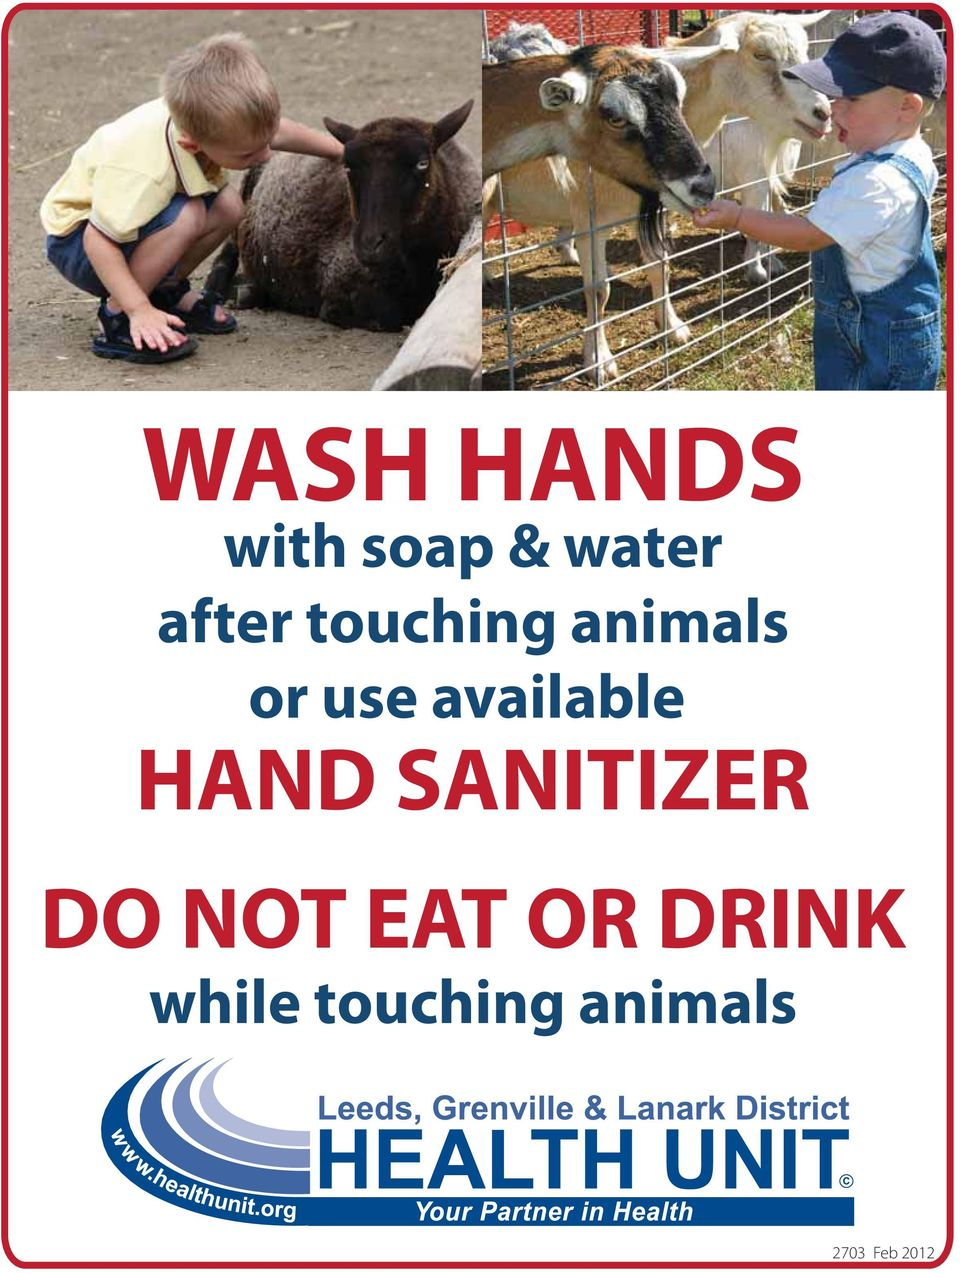 HAND SANITIZER DO NOT EAT OR DRINK